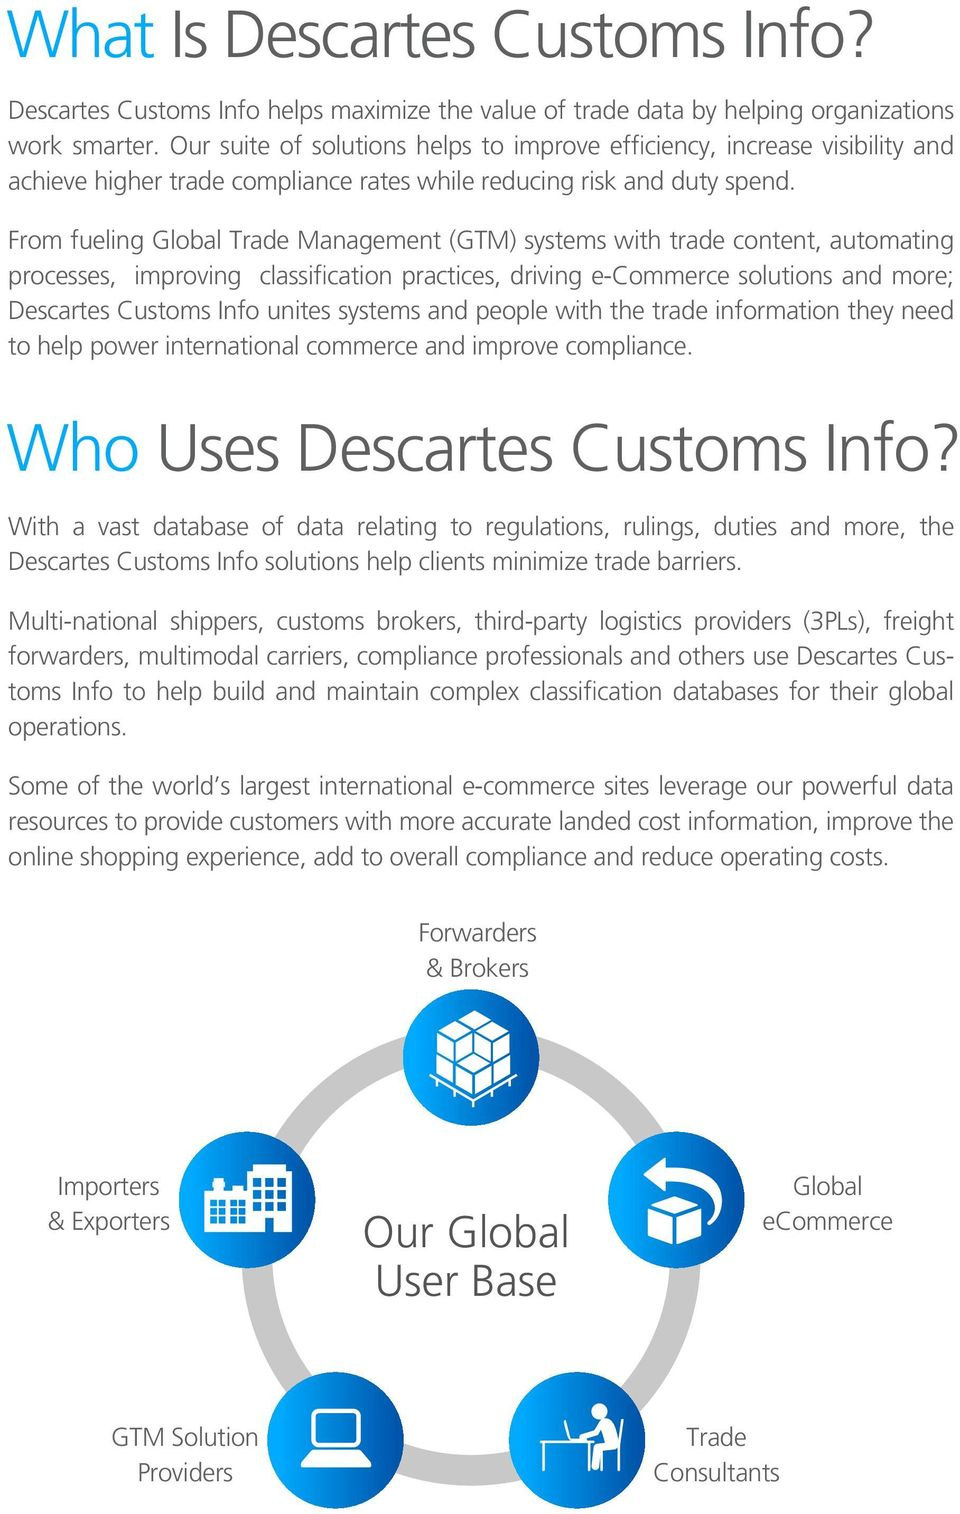 From fueling Global Trade Management (GTM) systems with trade content, automating processes, improving classification practices, driving e-commerce solutions and more; Descartes Customs Info unites